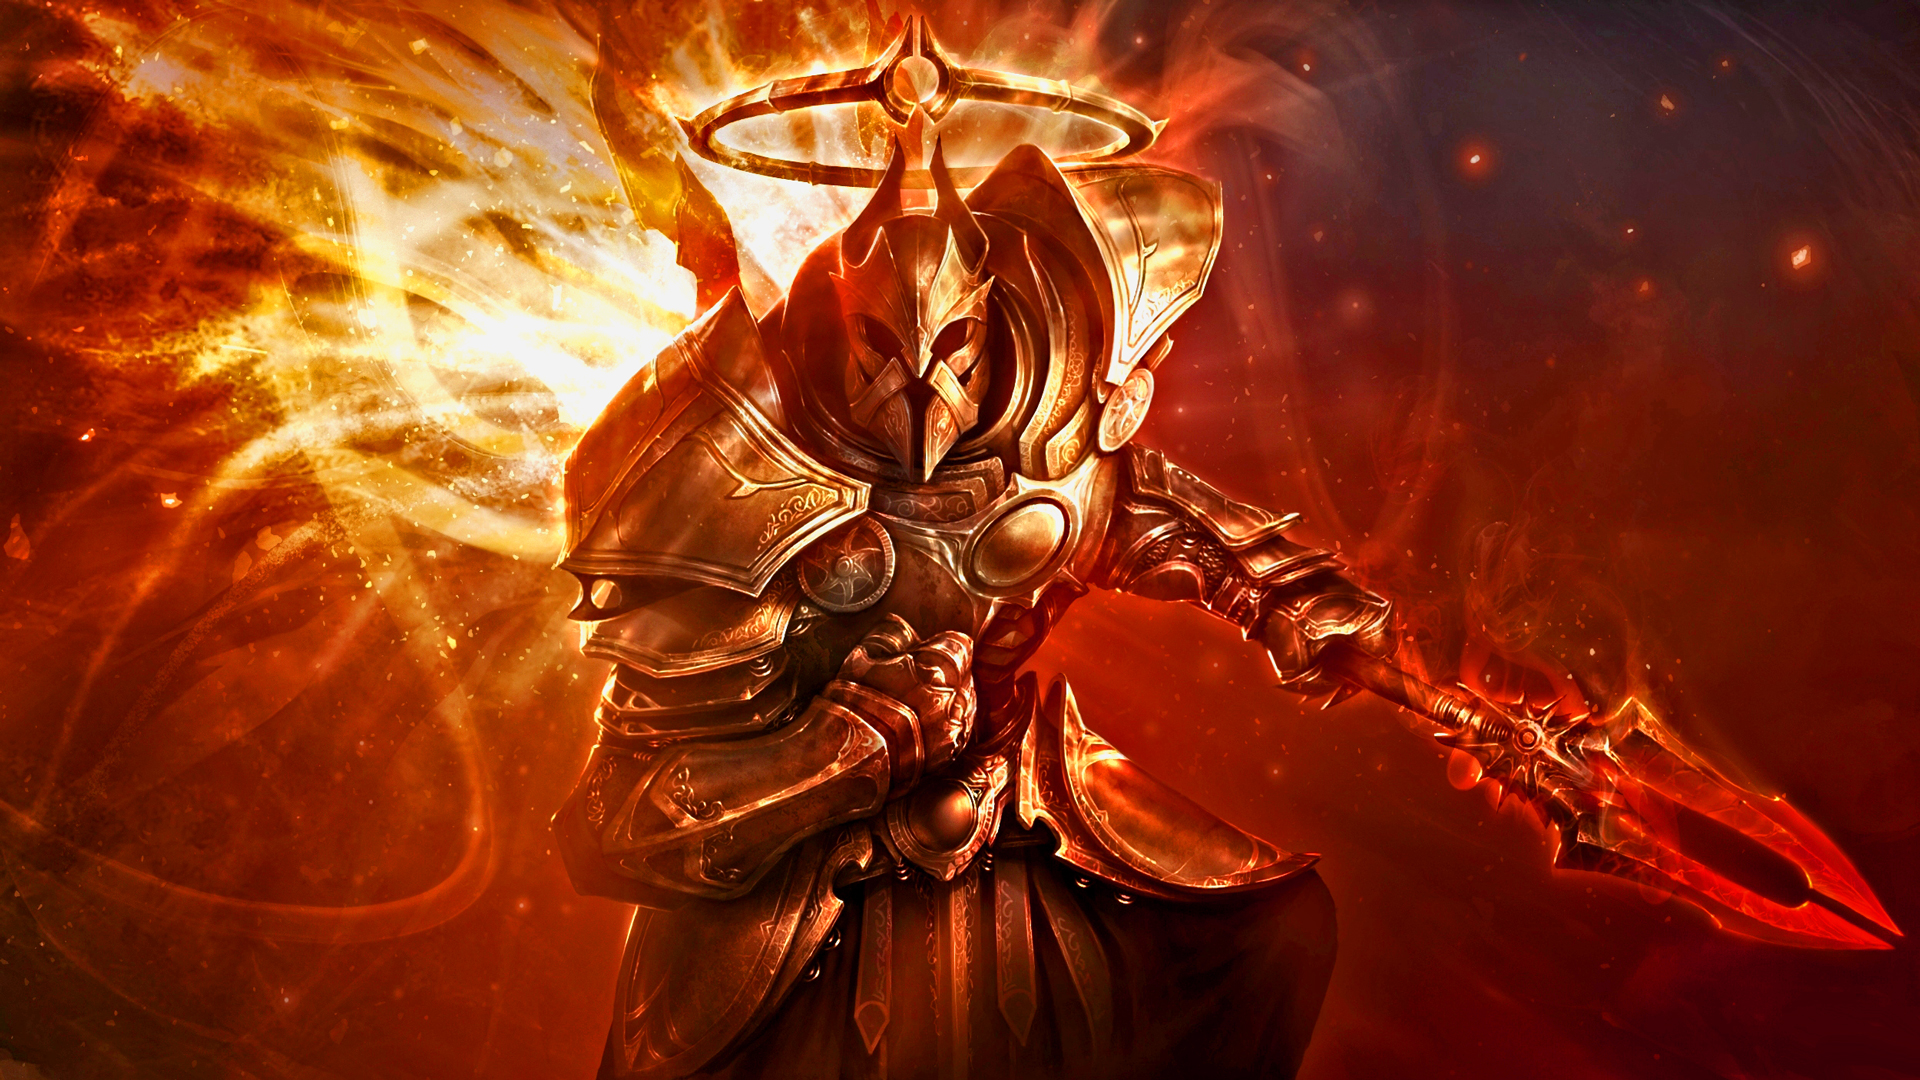 fantasy images warrior hd wallpaper and background photos 37147237